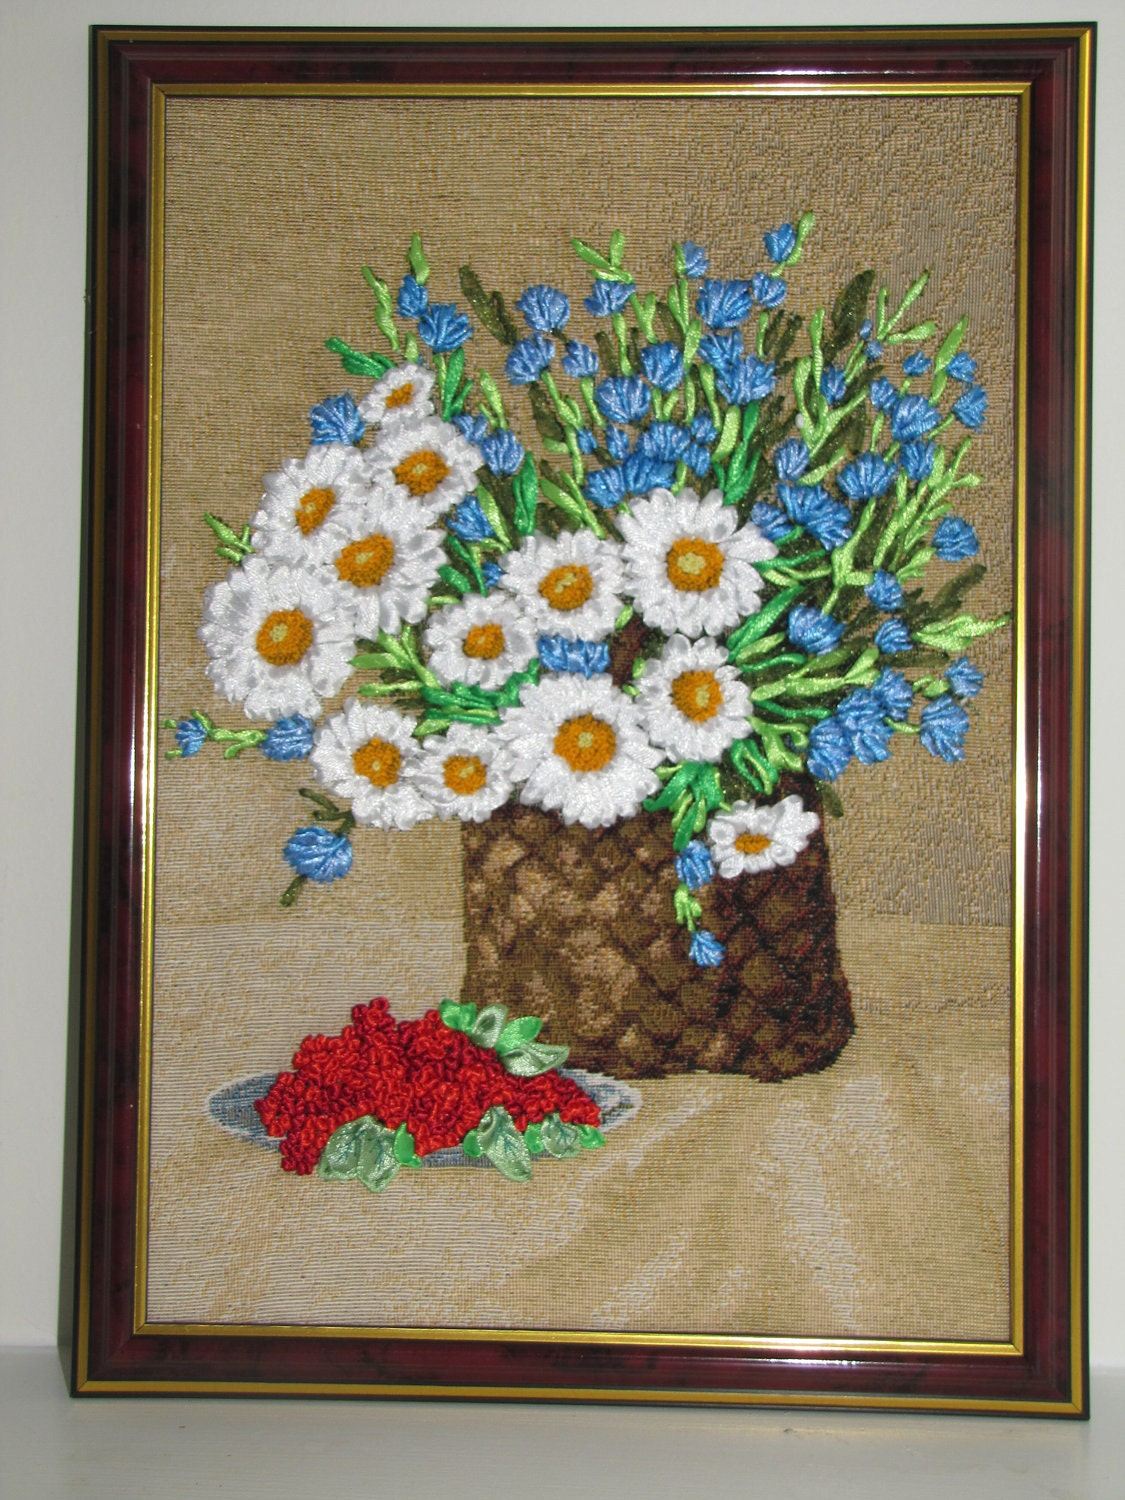 Wall Decorations With Ribbon : Ribbon embroidery wall art daisies in basket by